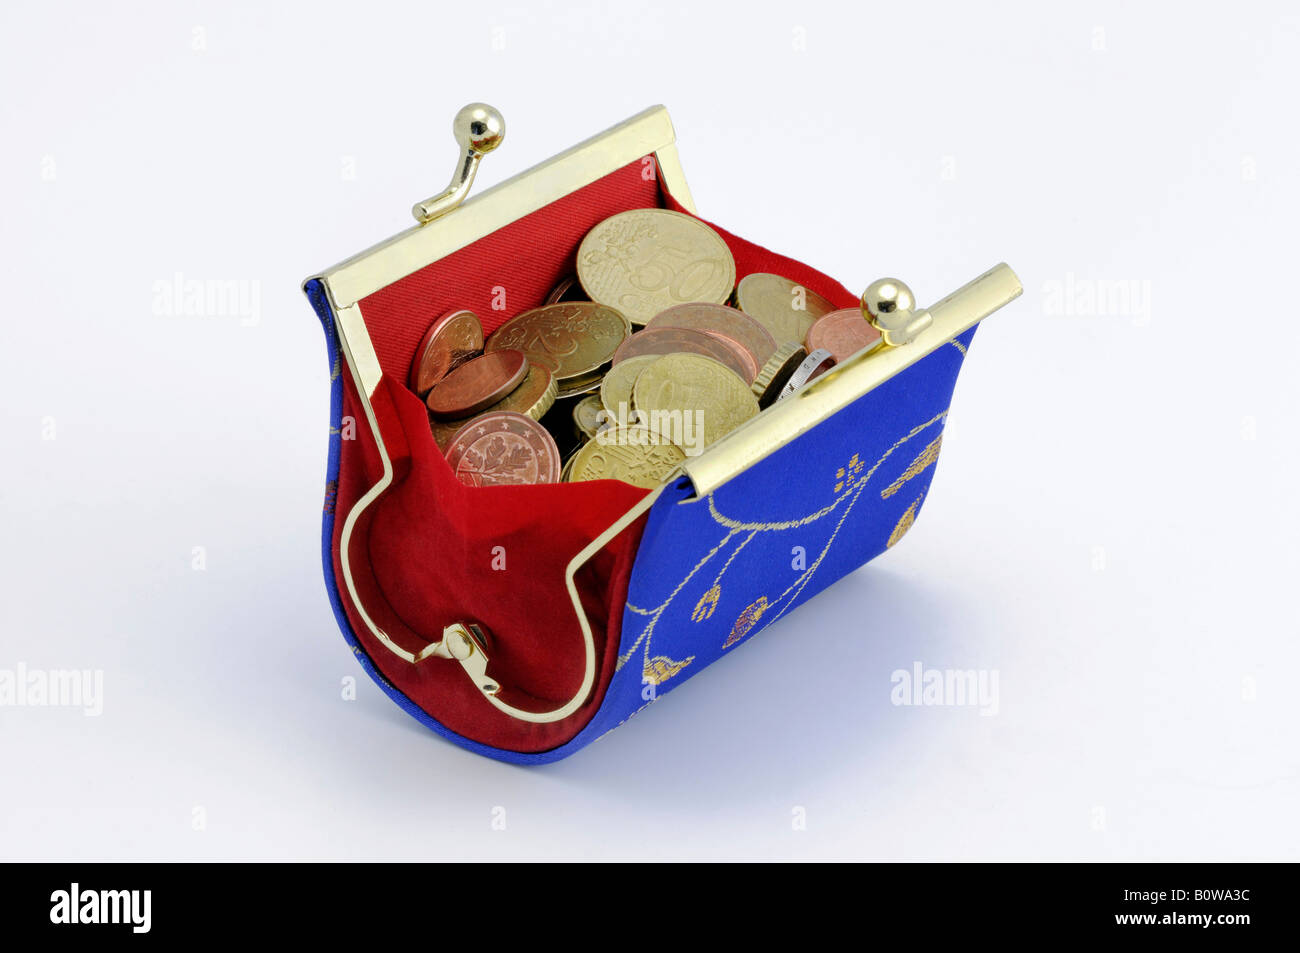 Blue and red Asian style change purse filled with Euro coins - Stock Image